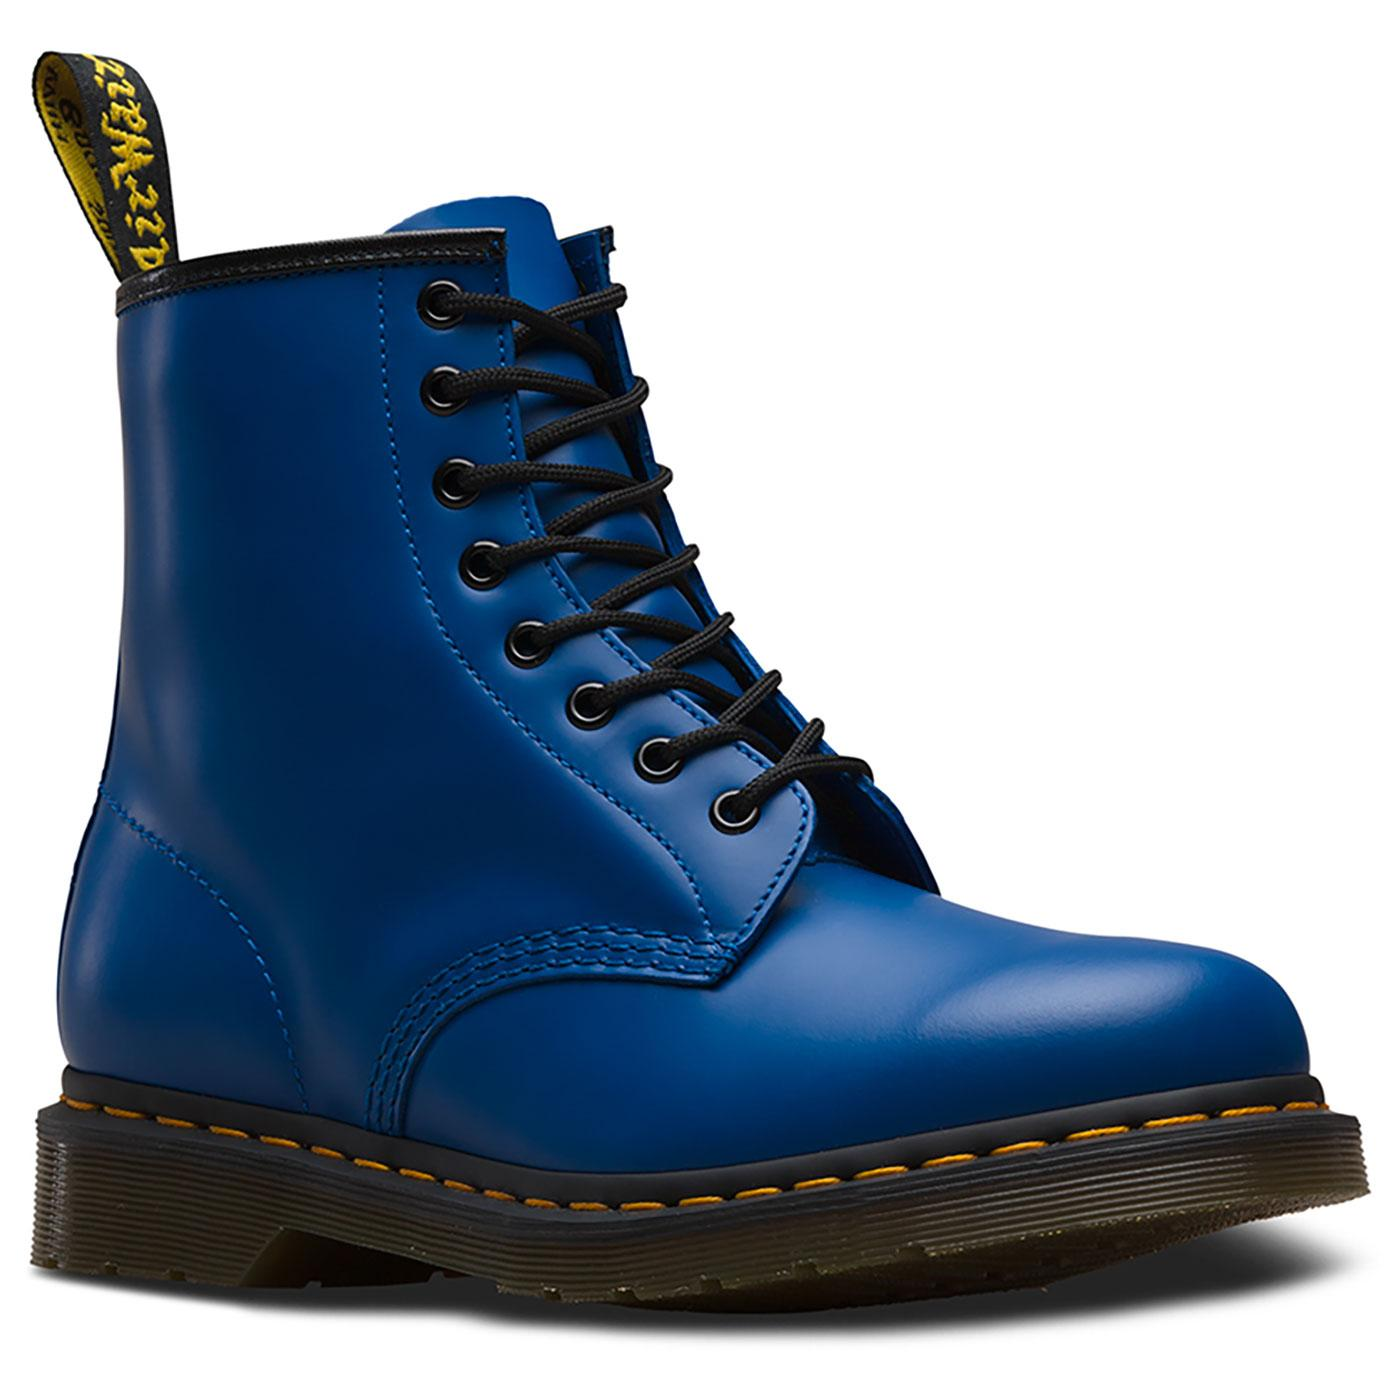 1460 Colour Pop DR MARTENS Retro Smooth Boots BLUE